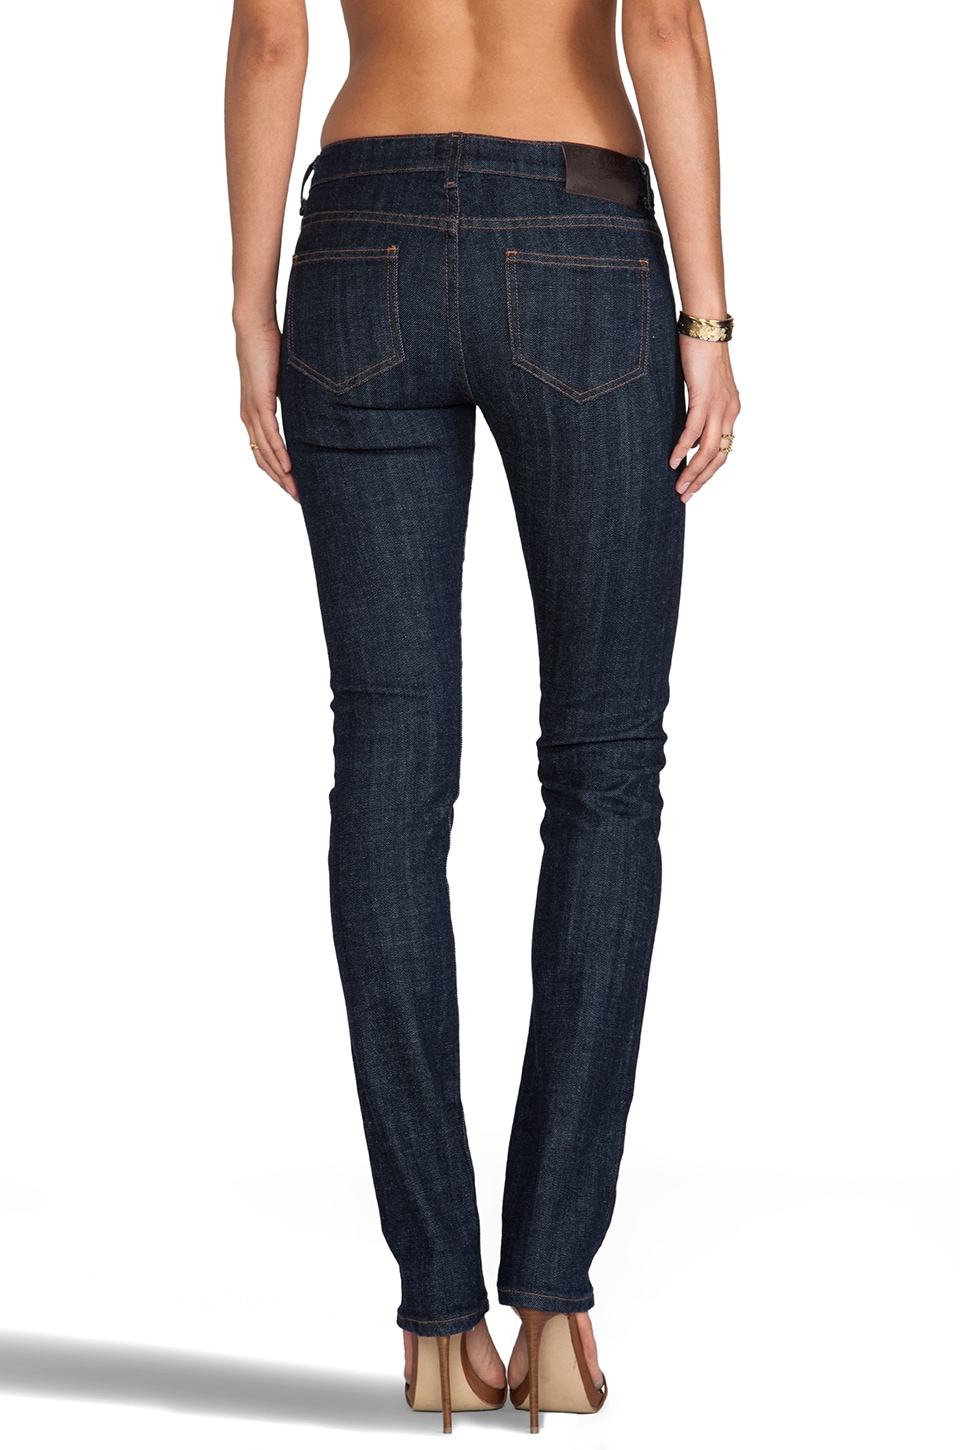 Naked & Famous Denim The Straight Stretch Selvedge in Indigo